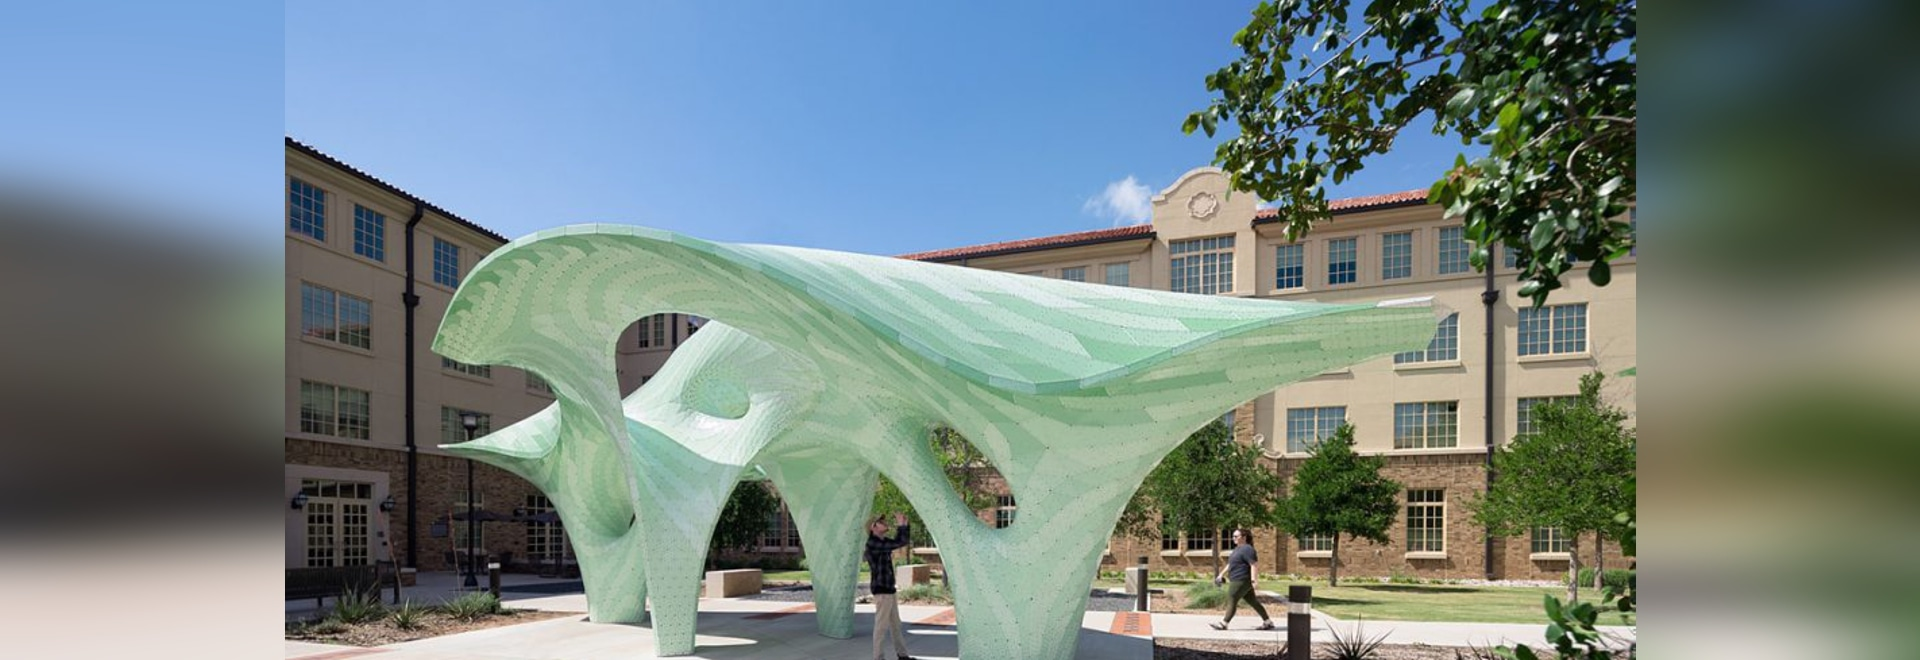 La Texas Tech University a une nouvelle sculpture publique par Marc Fornes